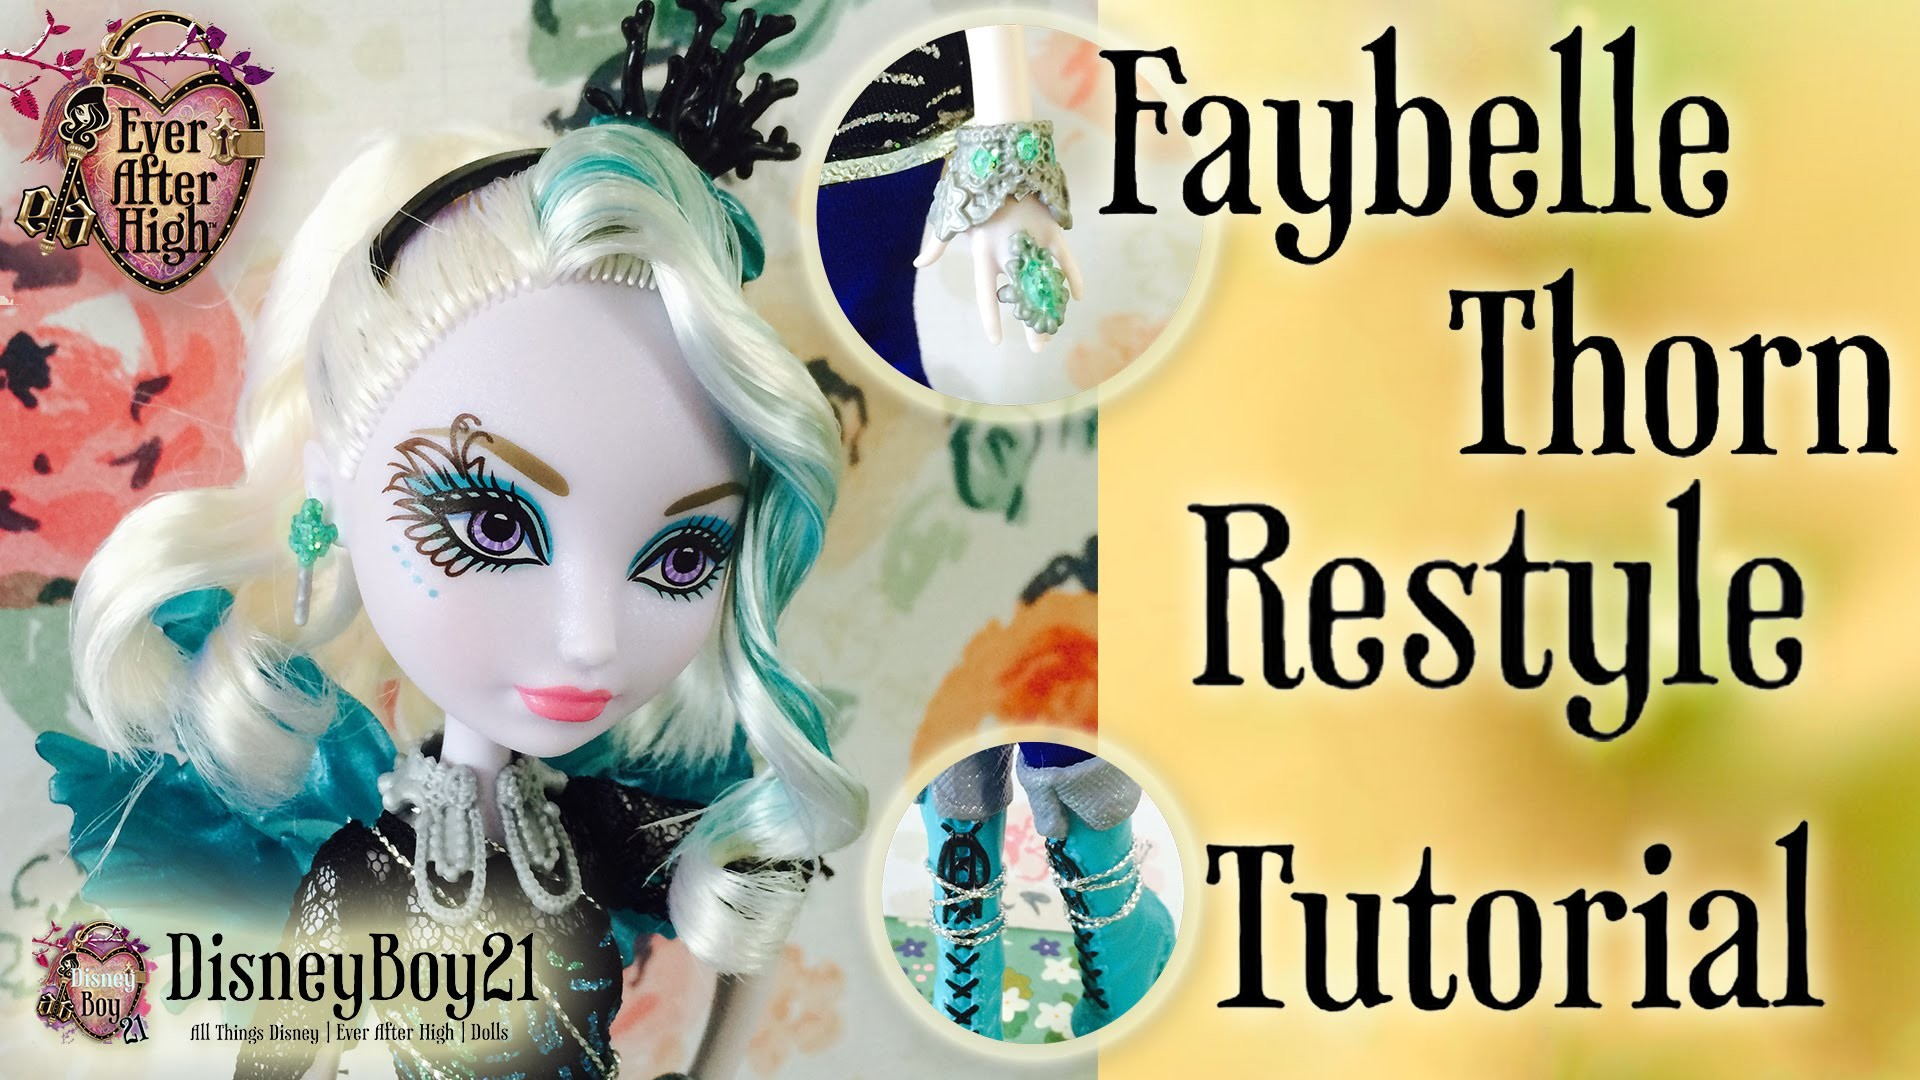 How To Curl Doll Hair Tutorial - Faybelle Thorn Restyle & Repaint | Ever After High